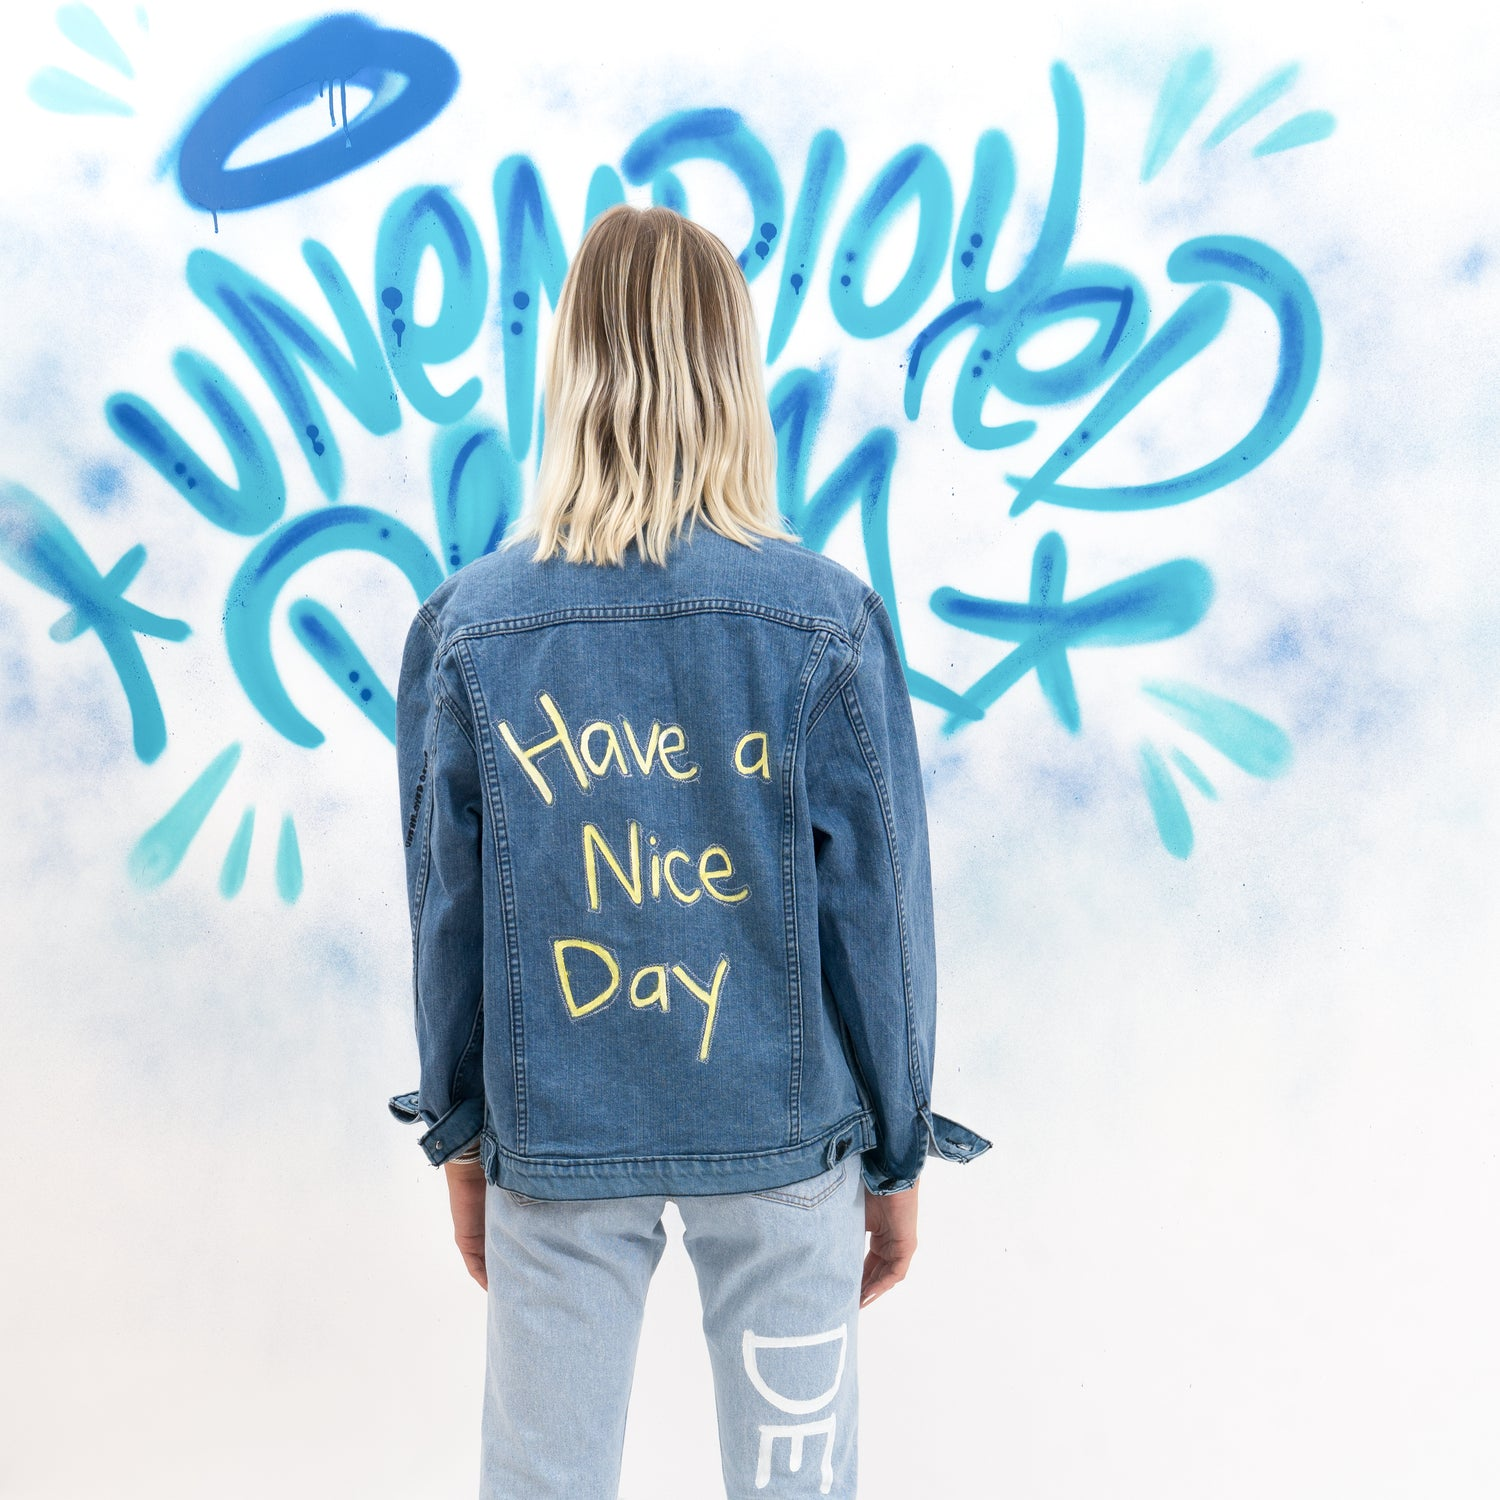 Have a Nice Day Jacket